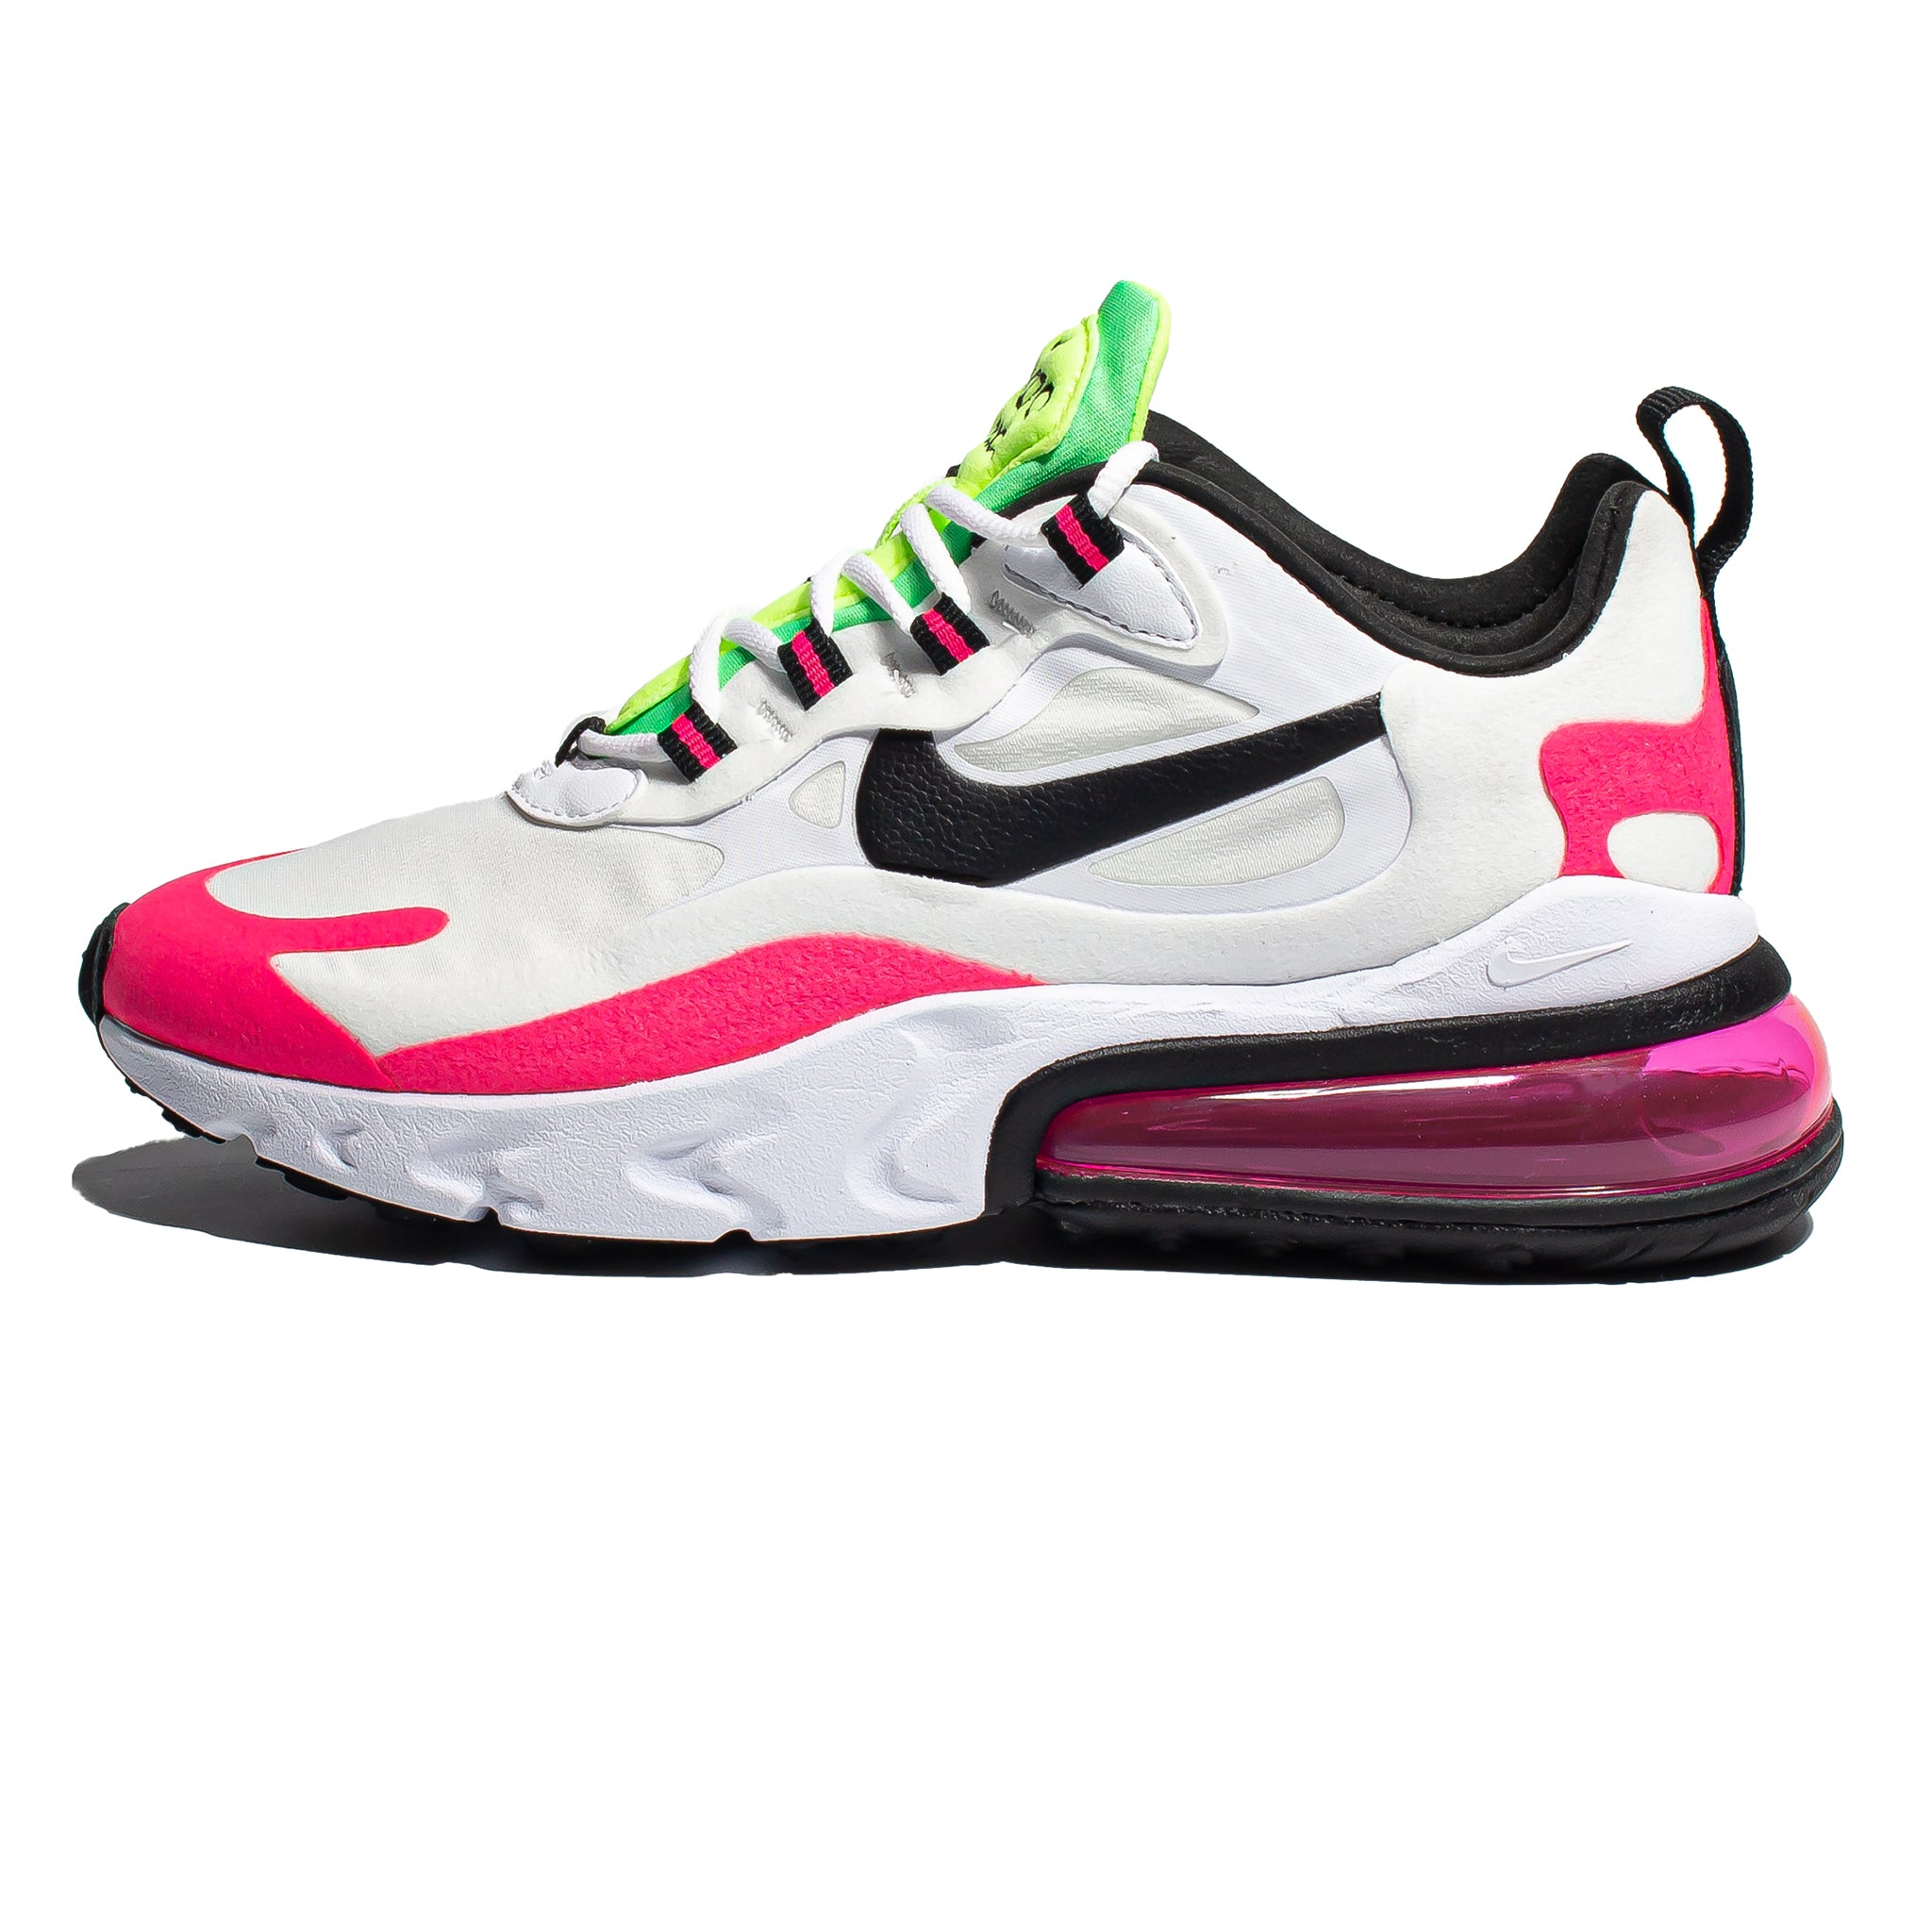 Nike Air Max 270 React 'Watermelon'